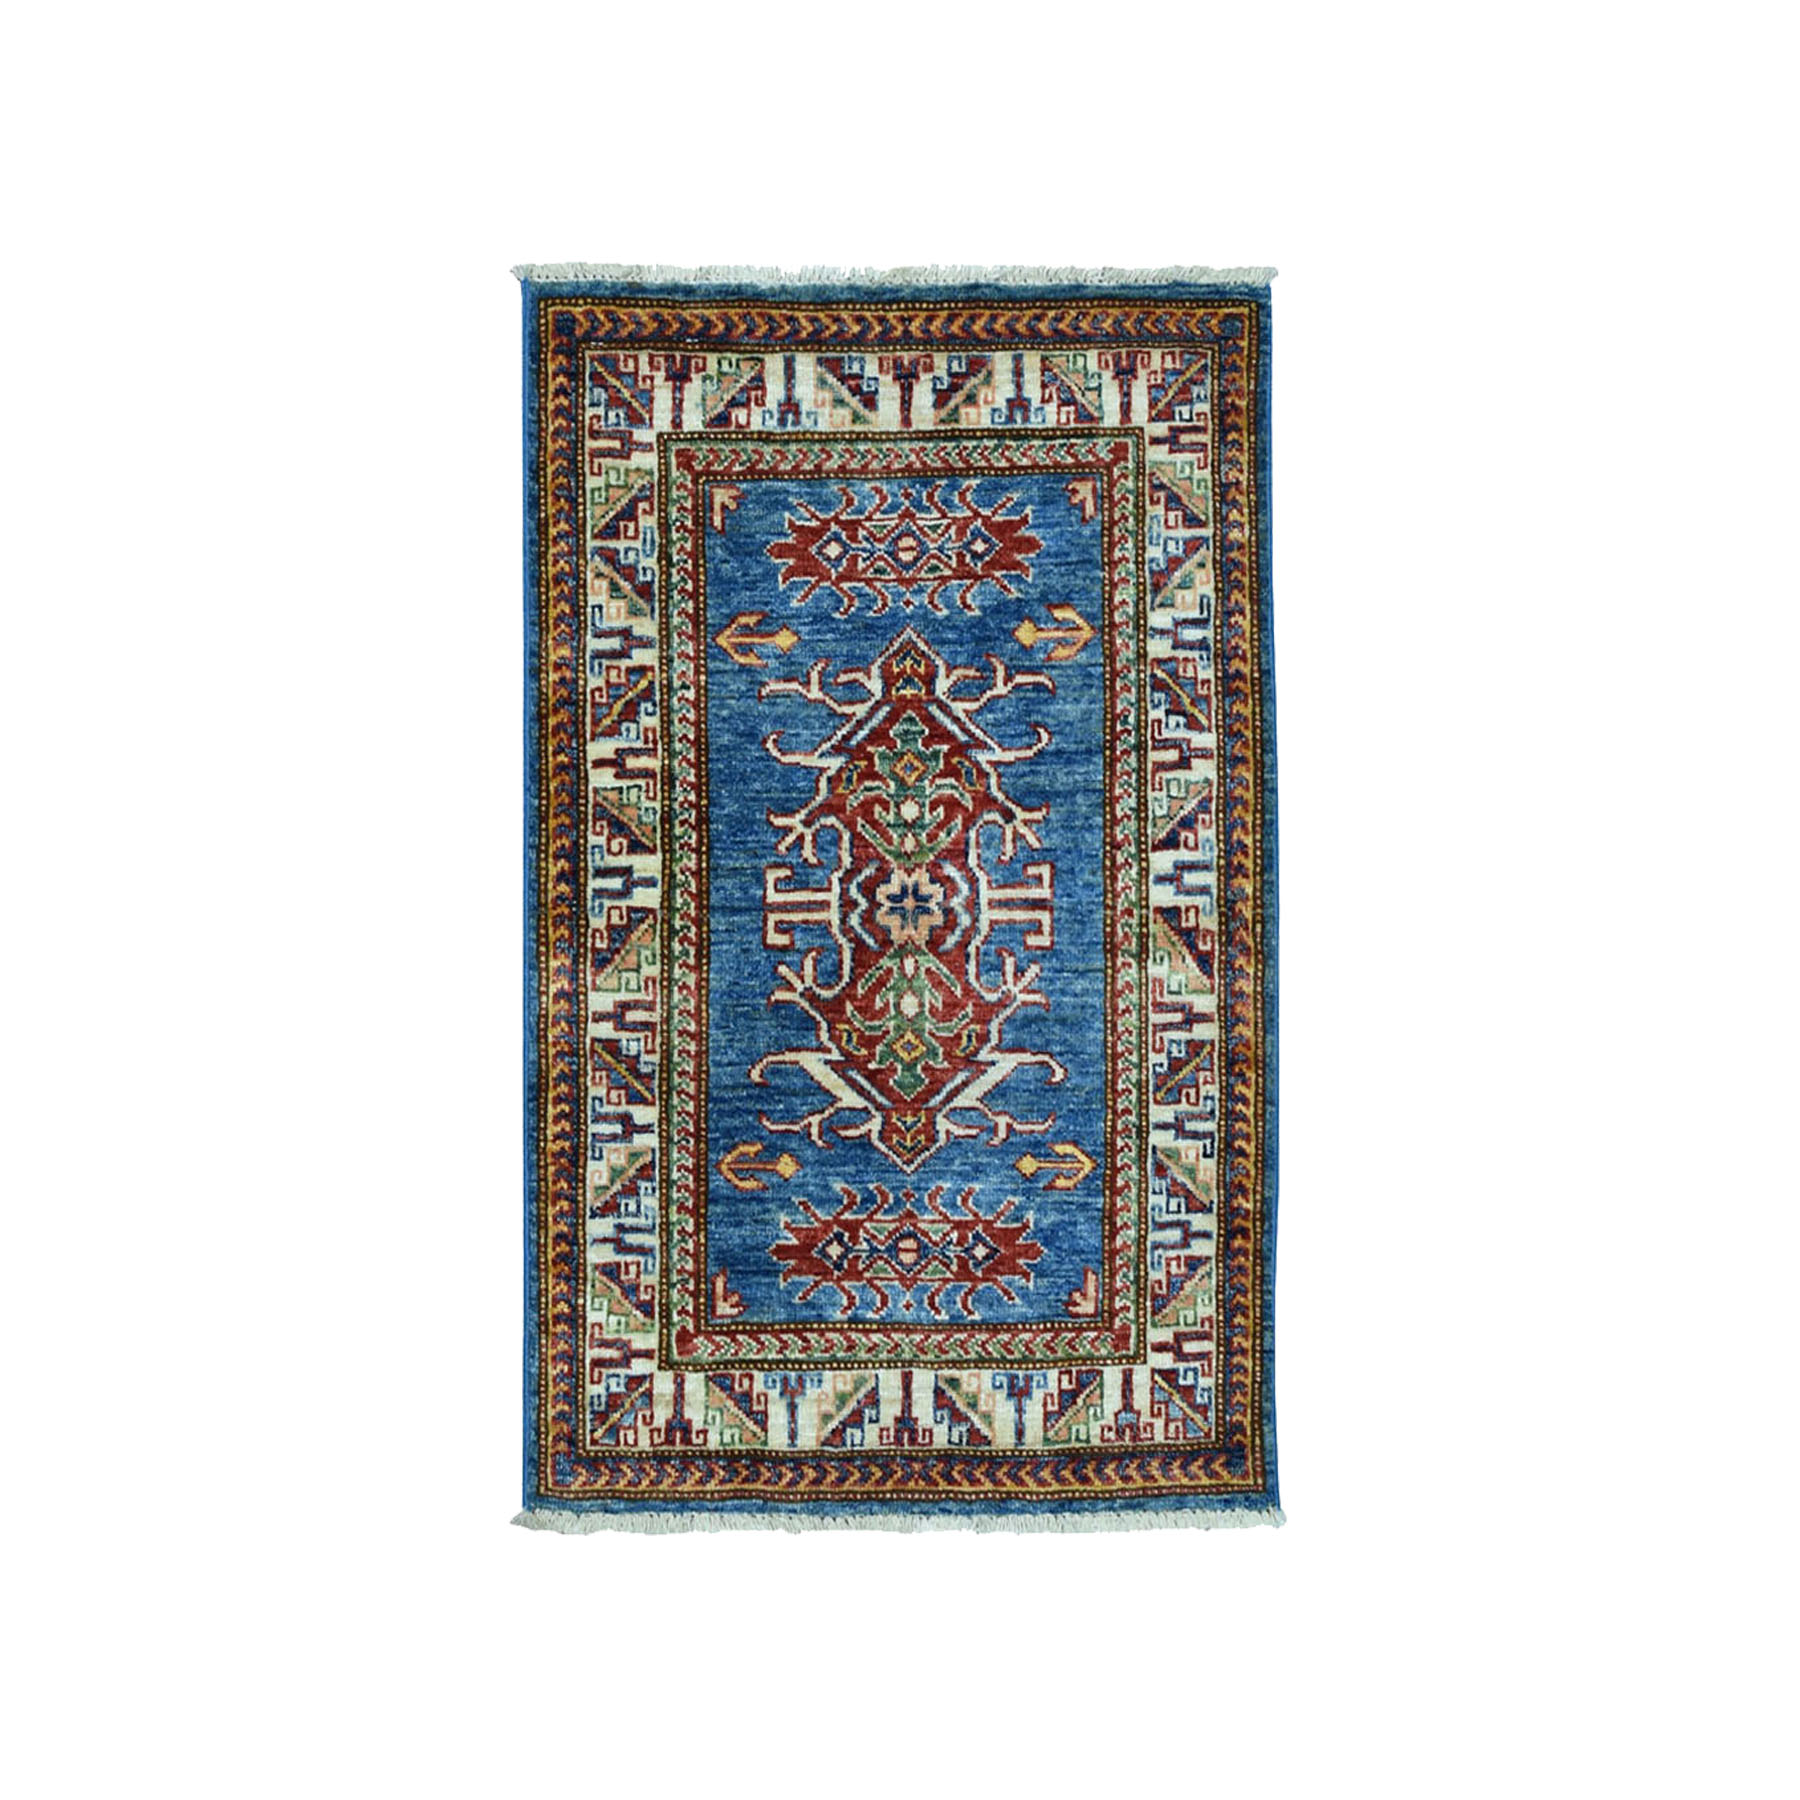 "2'1""x3' Super Kazak Pure Wool Blue Geometric Design Hand Woven Oriental Rug"